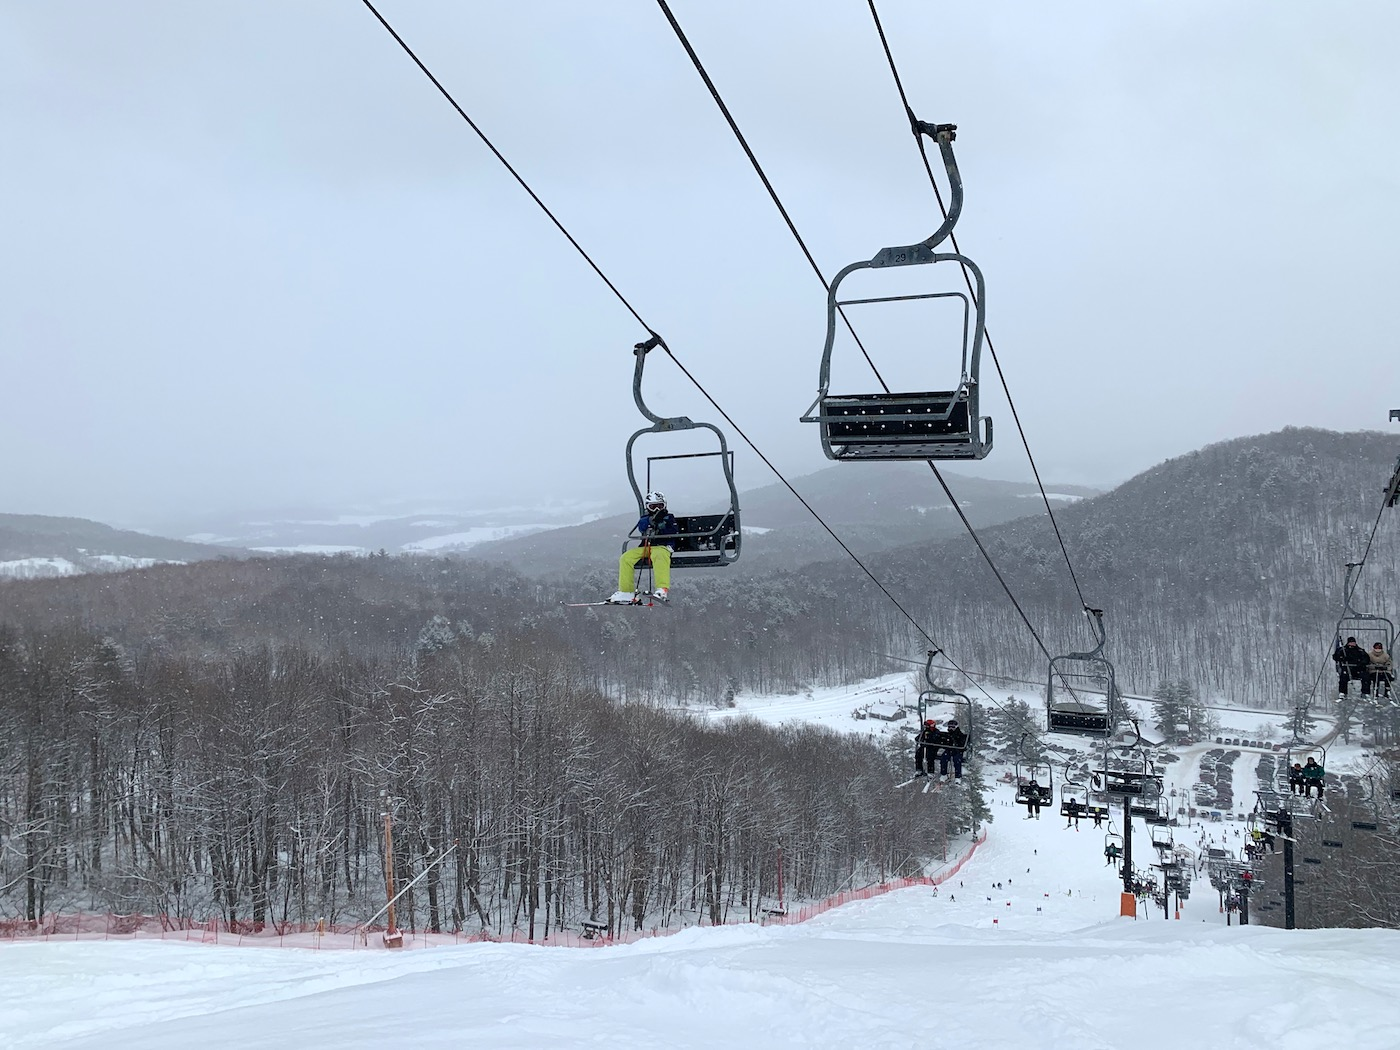 two chairlifts side by side